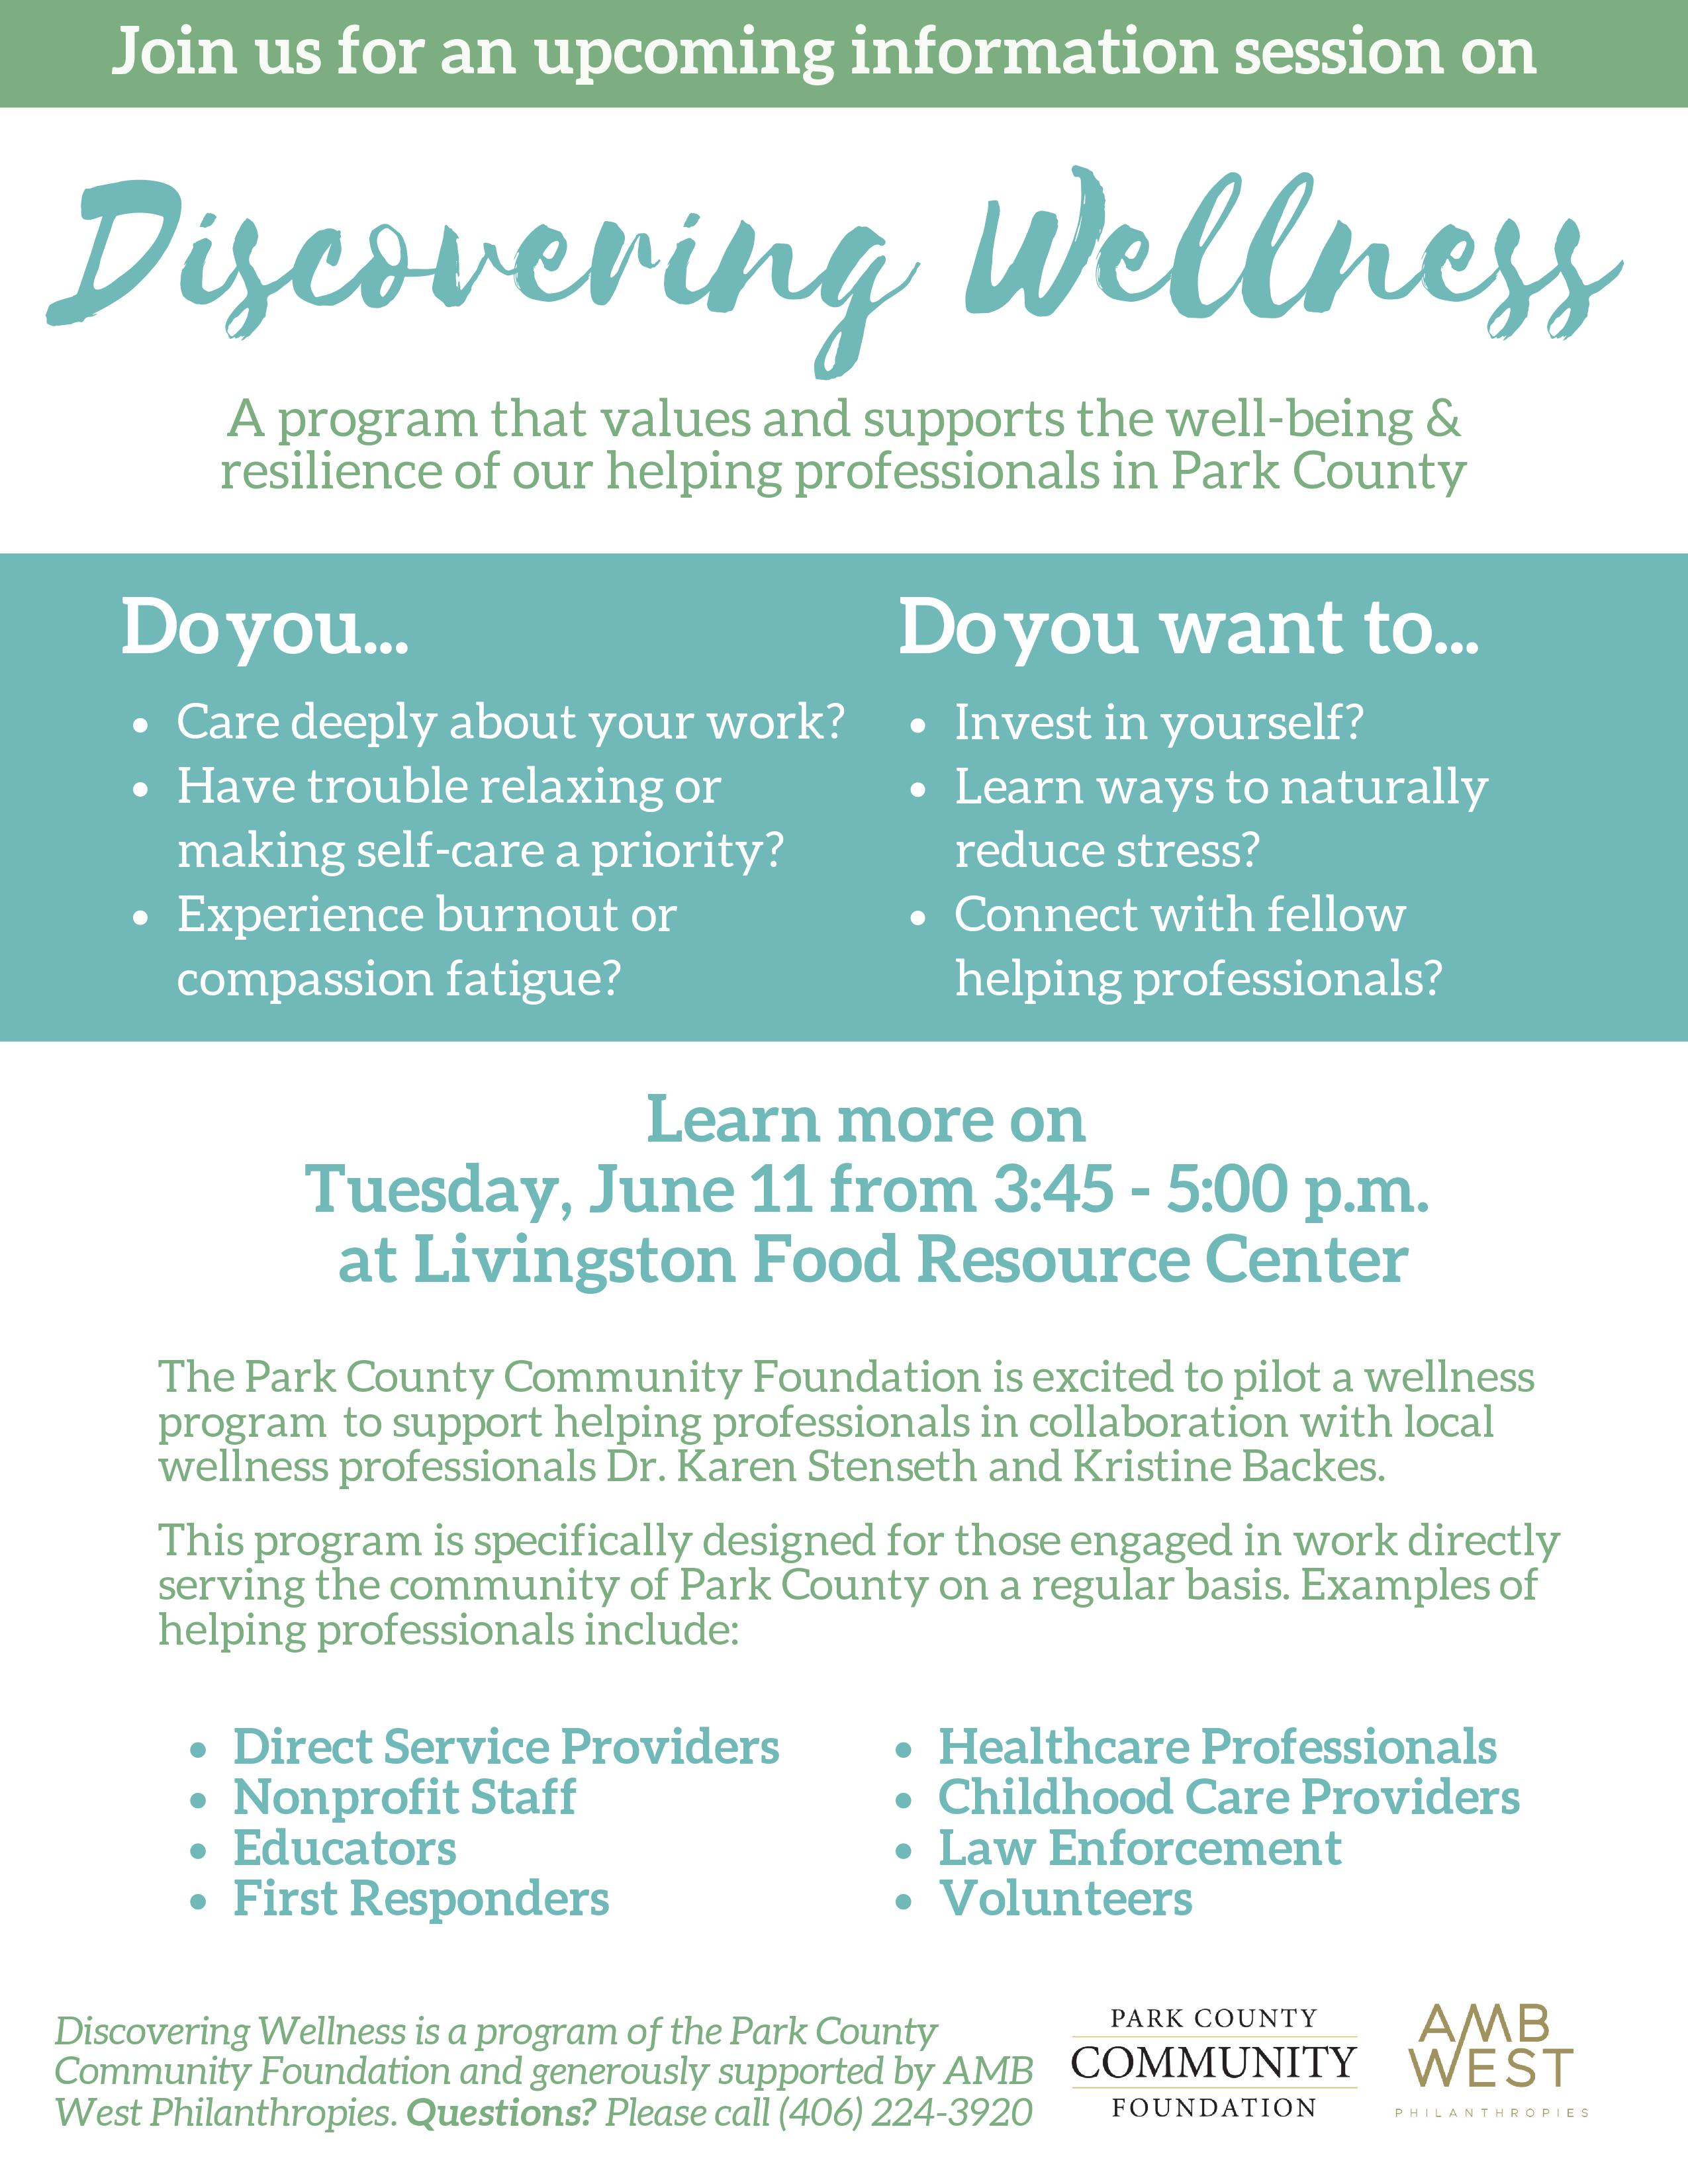 Discovering Wellness Information Session